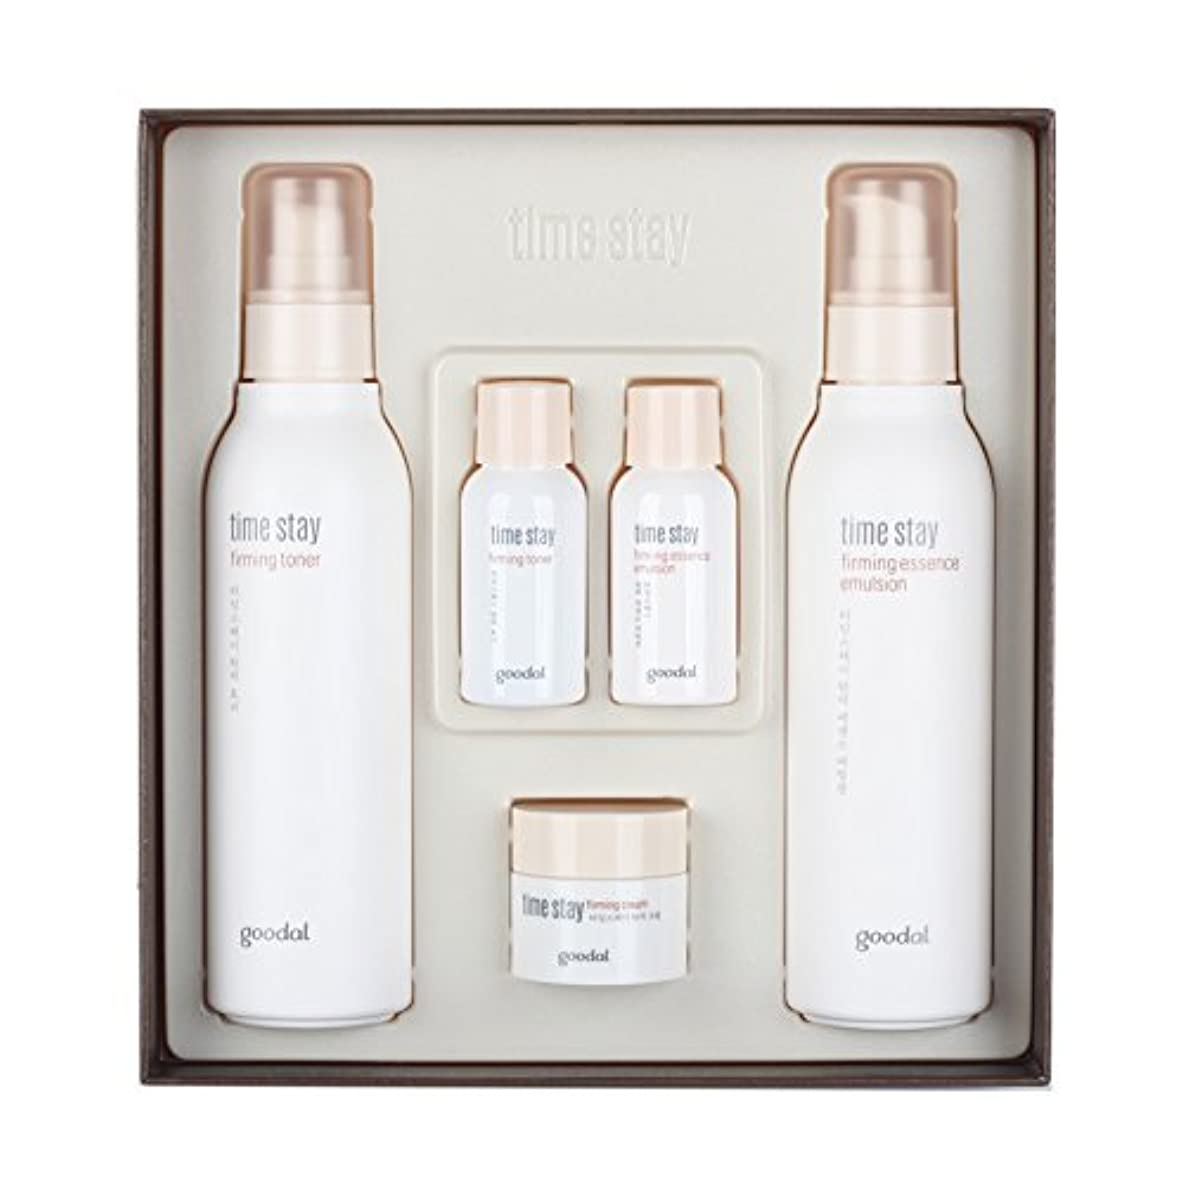 学ぶ隔離する祈りCLIO goodal time stay skin-firming care set